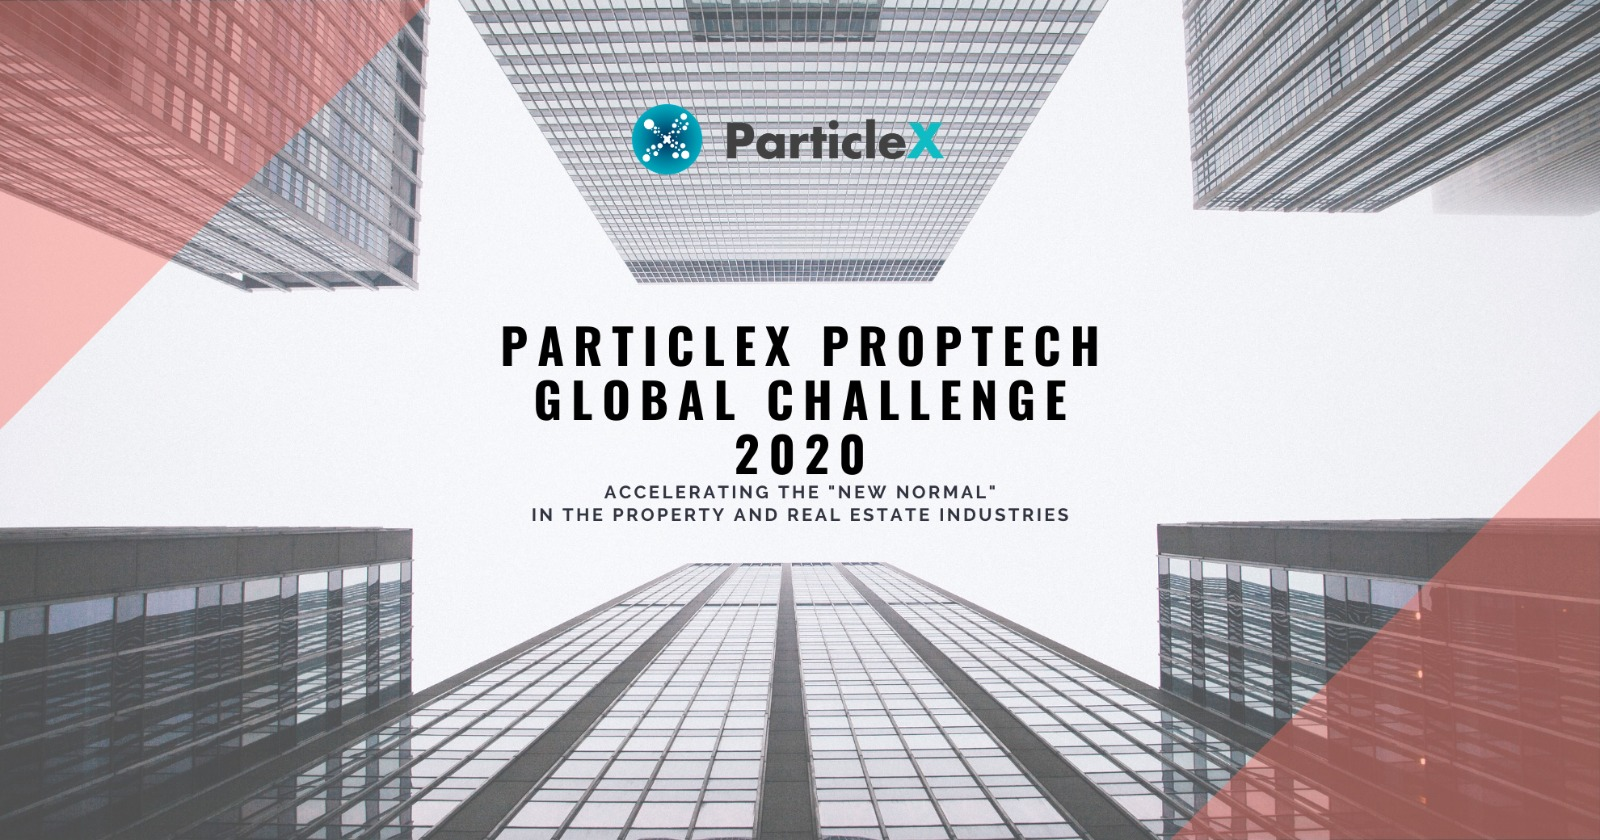 ParticleX hosts their 1st IC Meeting of ParticleX PropTech Global Challenge 2020